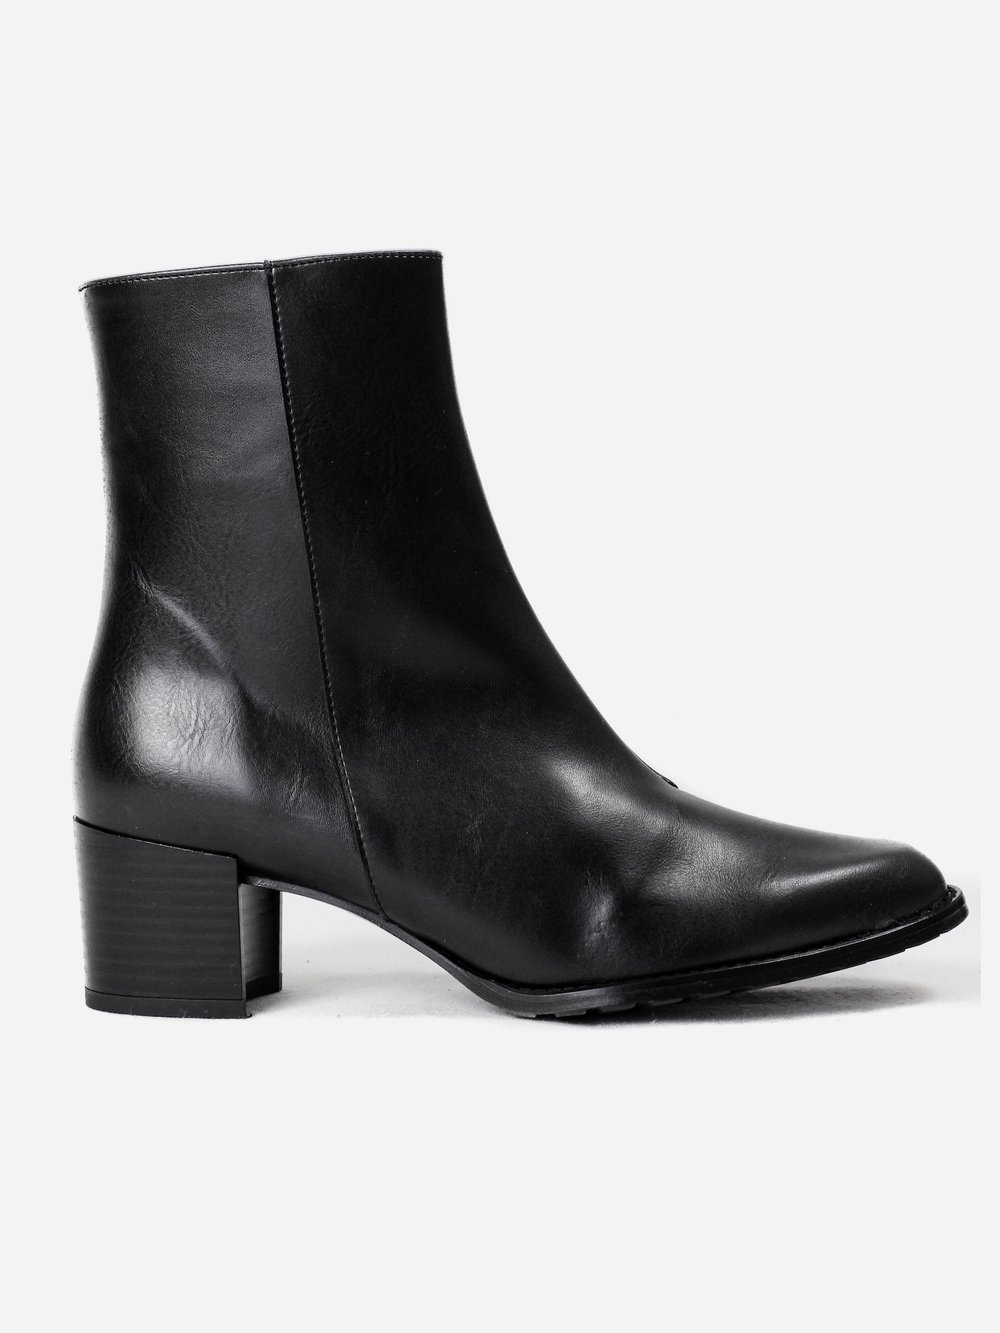 Vegan Boots For Fall and Winter - Bhava Studio Patti Ankle Boot